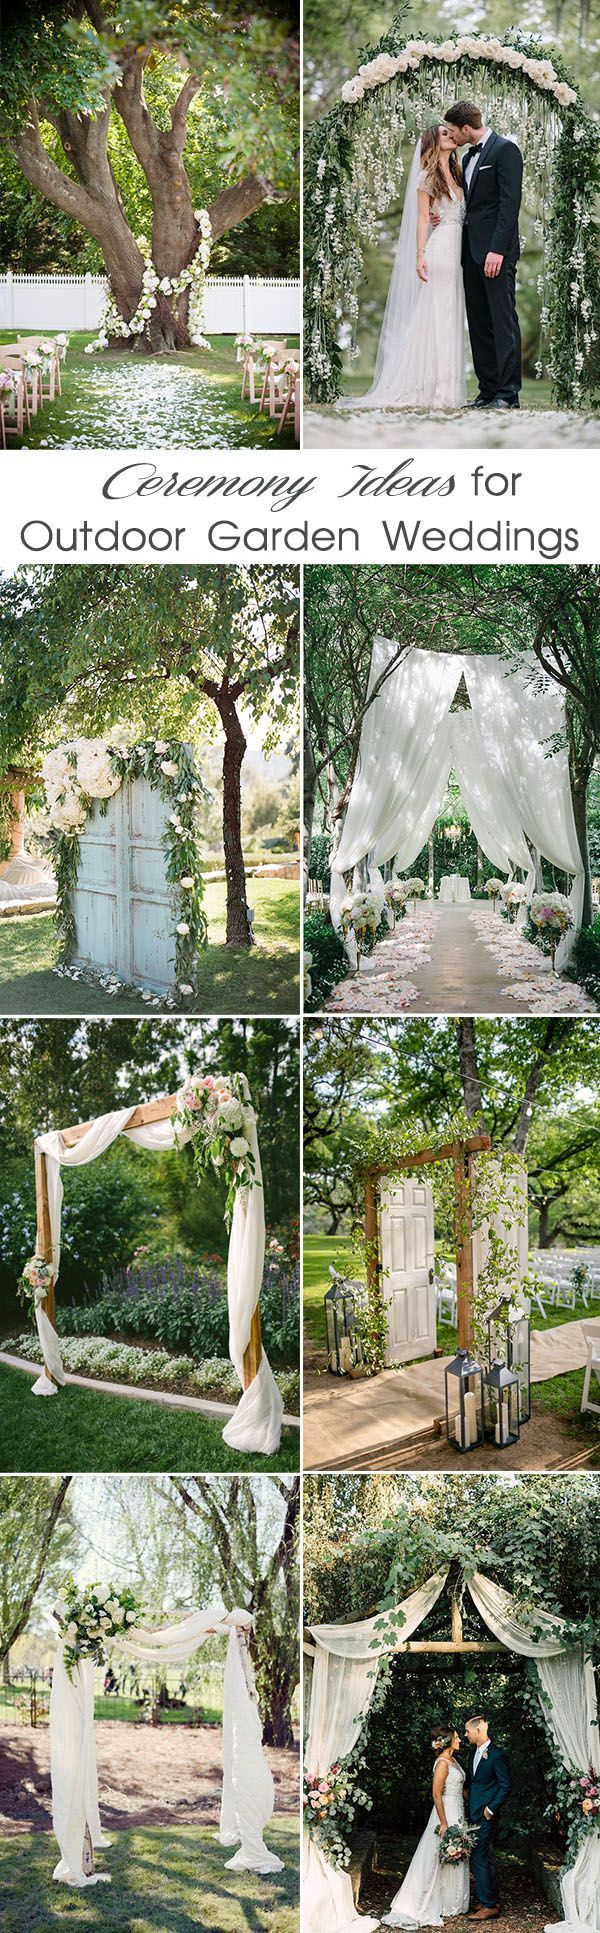 inspiring outdoor garden wedding ceremony ideas